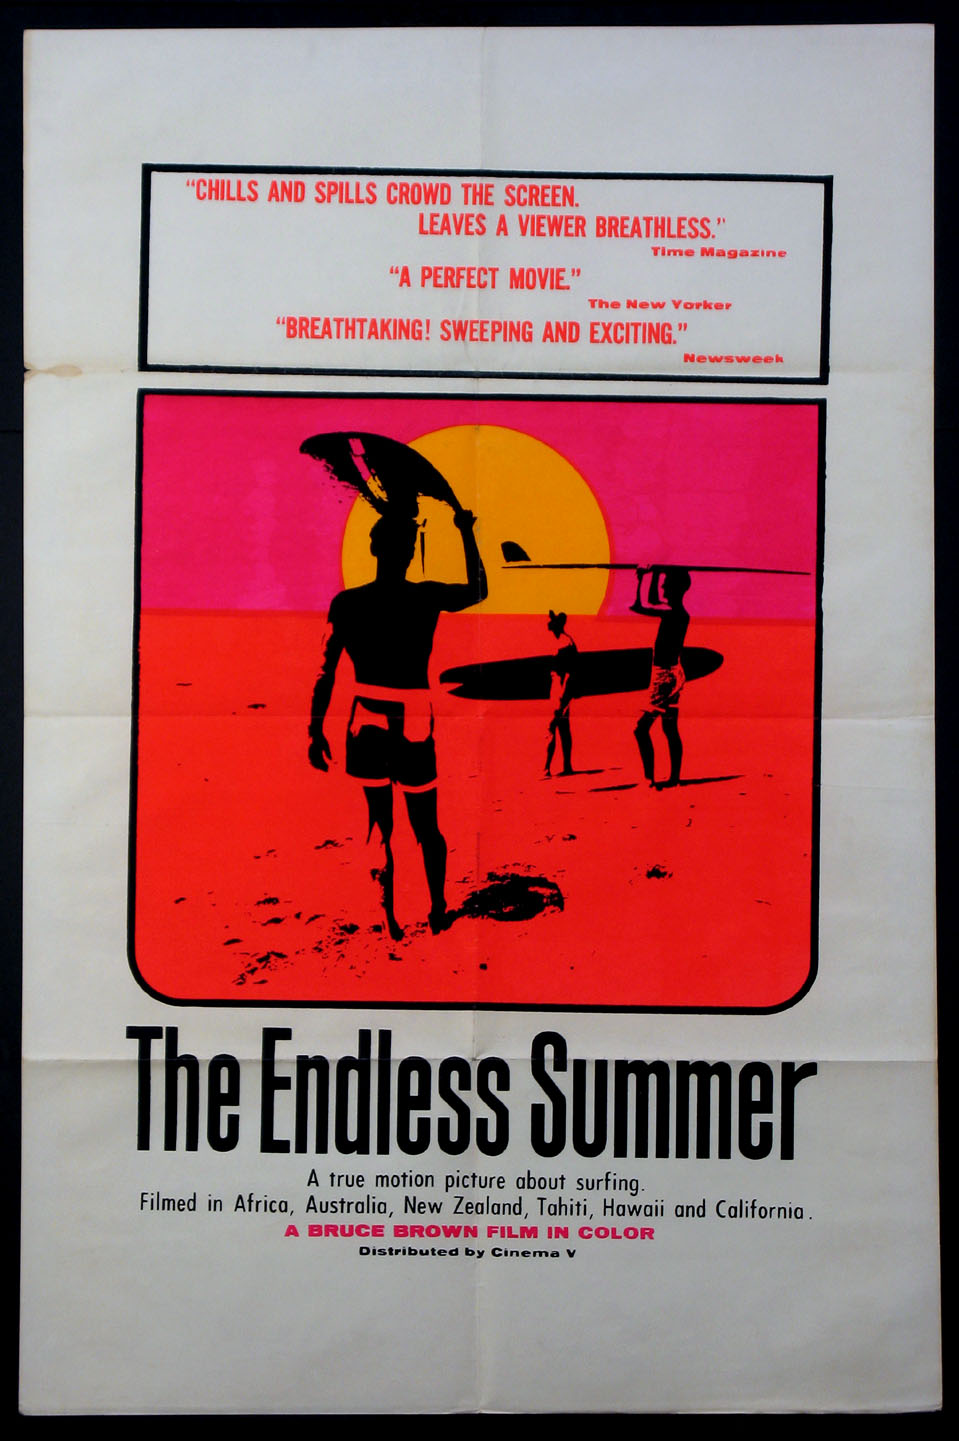 ENDLESS SUMMER, THE (The Endless Summer) @ FilmPosters.com